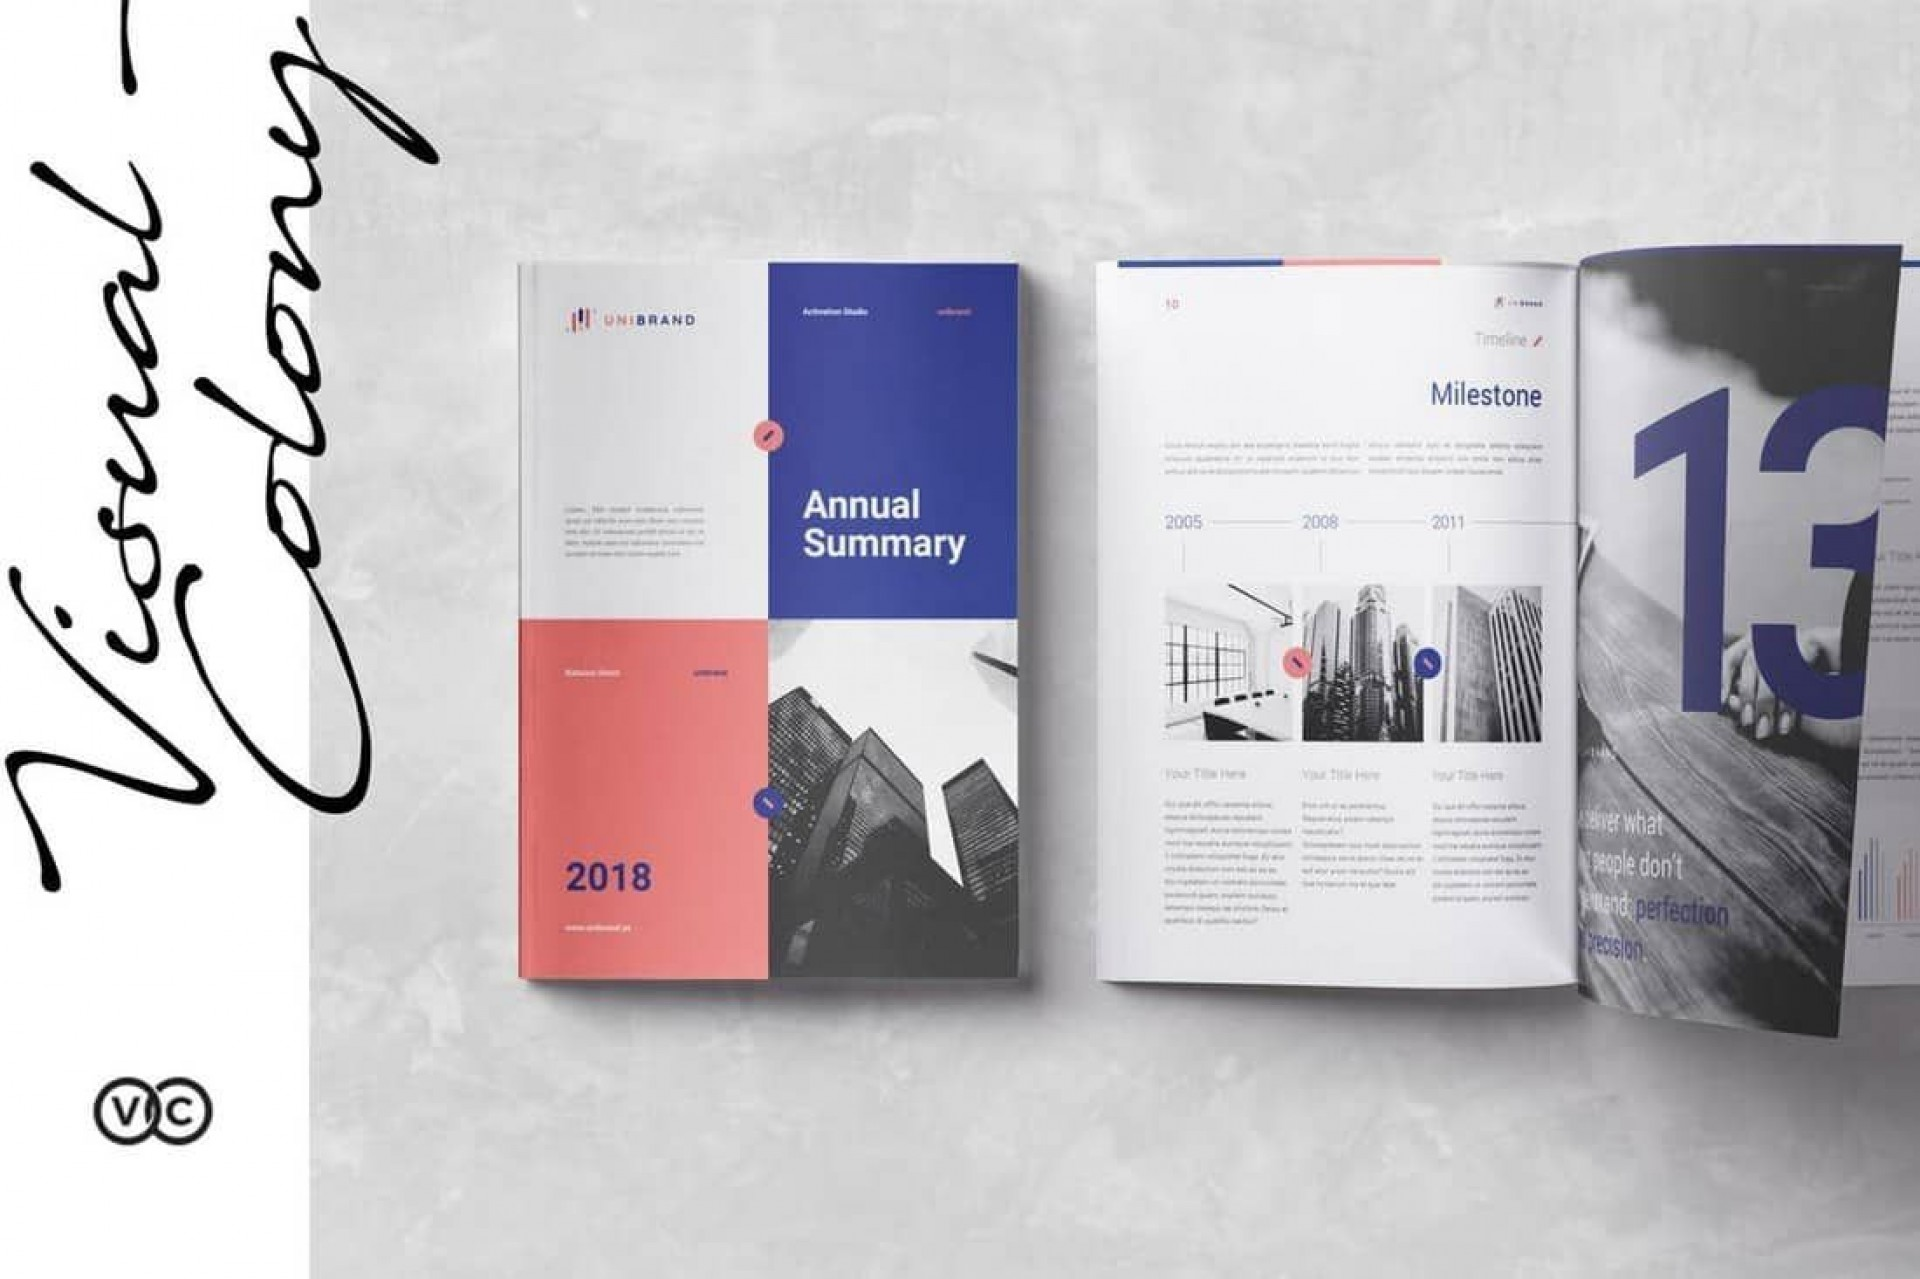 008 Fascinating Free Annual Report Template Indesign Image  Adobe Non Profit1920